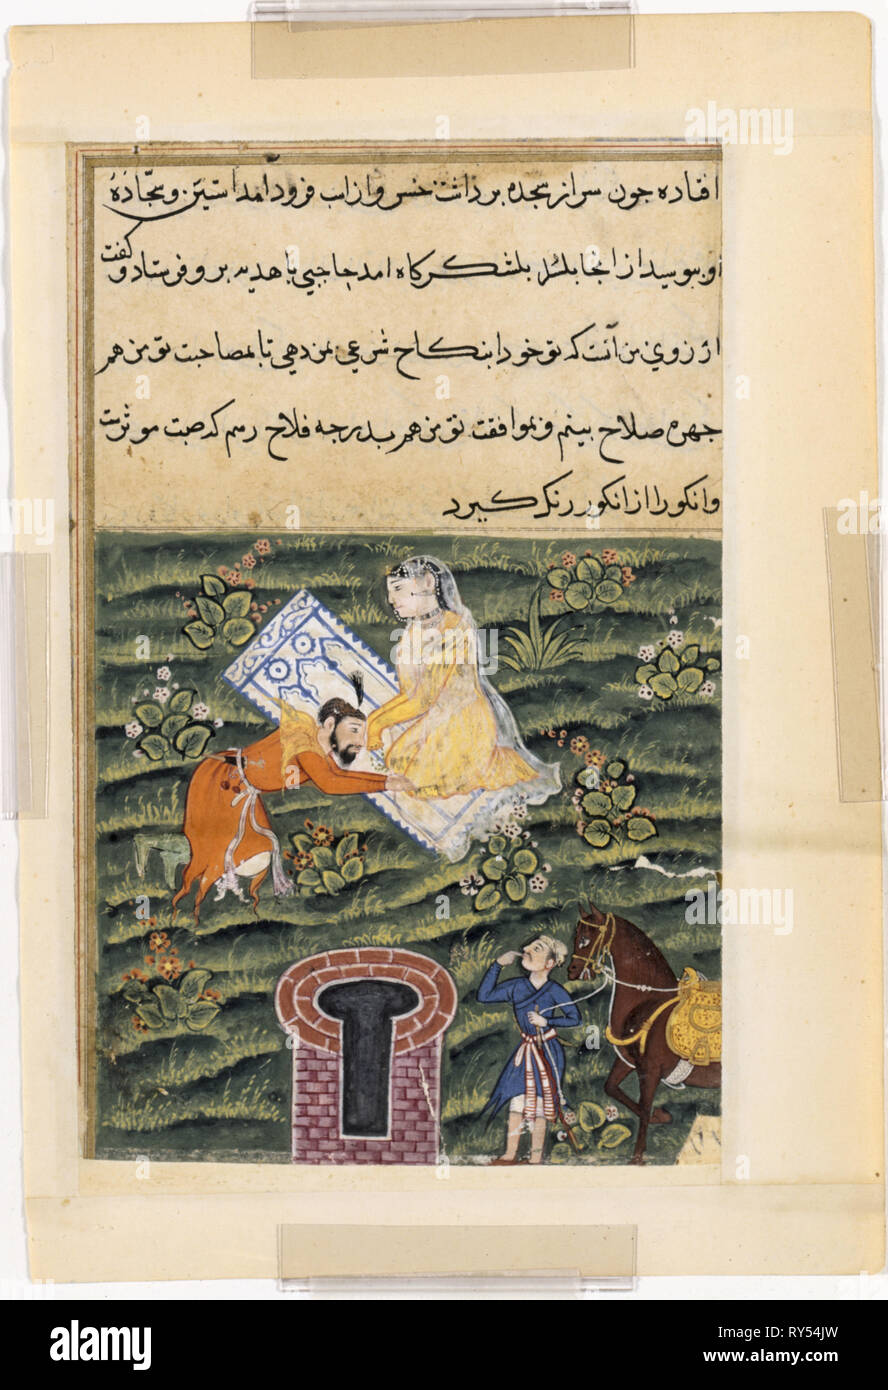 Page from Tales of a Parrot (Tuti-nama): Fifty-first night: Khusrau, the King of Kings, pays homage to the pious daughter of Khassa, c. 1560. India, Mughal, Reign of Akbar, 16th century. Opaque watercolor, ink and gold on paper - Stock Image